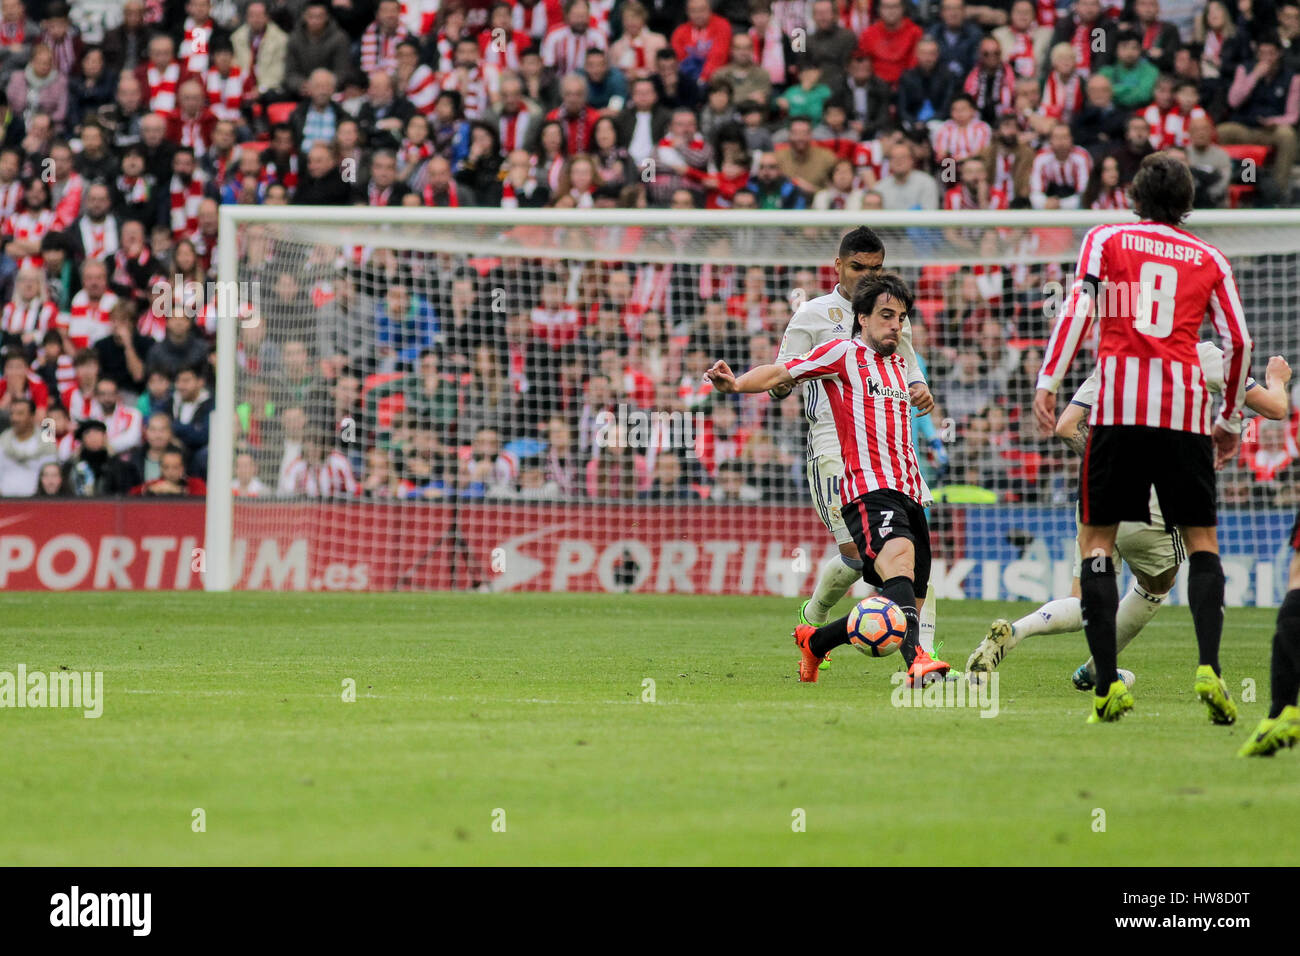 Bilbao, Vizcaya, Spain. 18th March, 2017. Be–at passing the ball during the Liga Santander match between Athletic - Stock Image